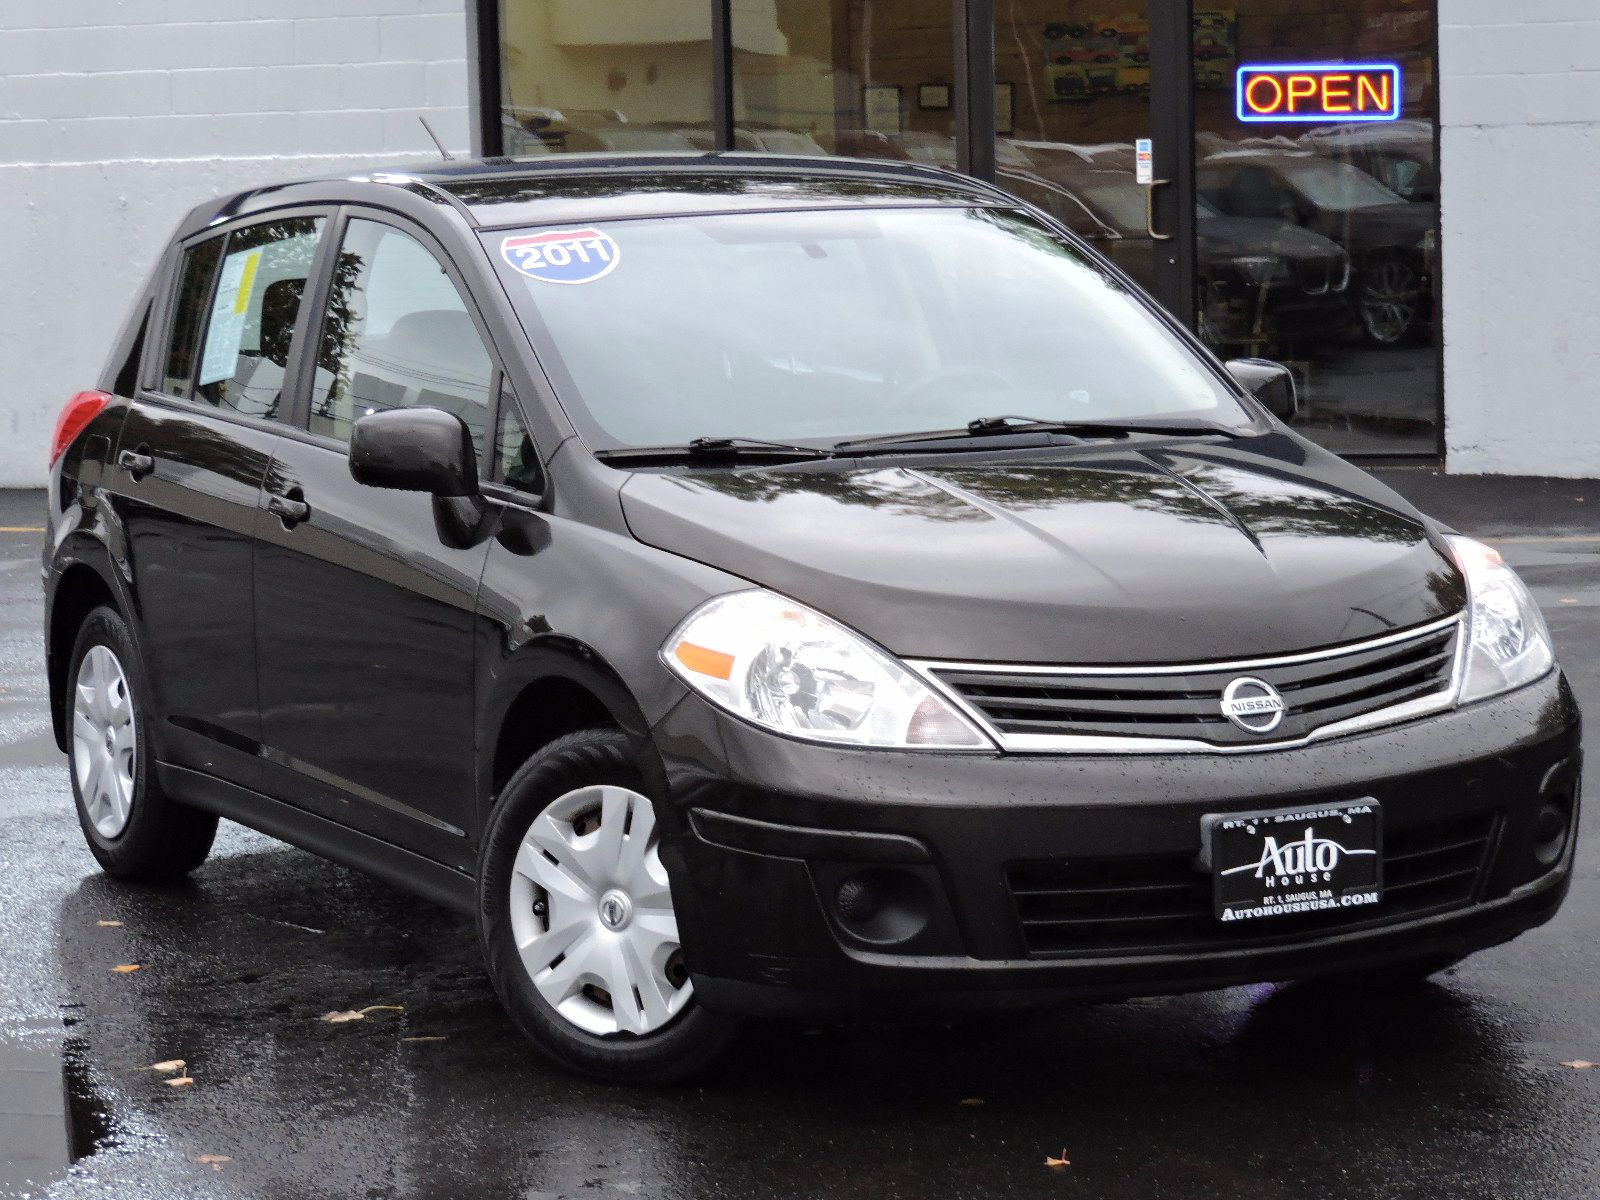 used 2011 nissan versa 1.8 s at auto house usa saugus